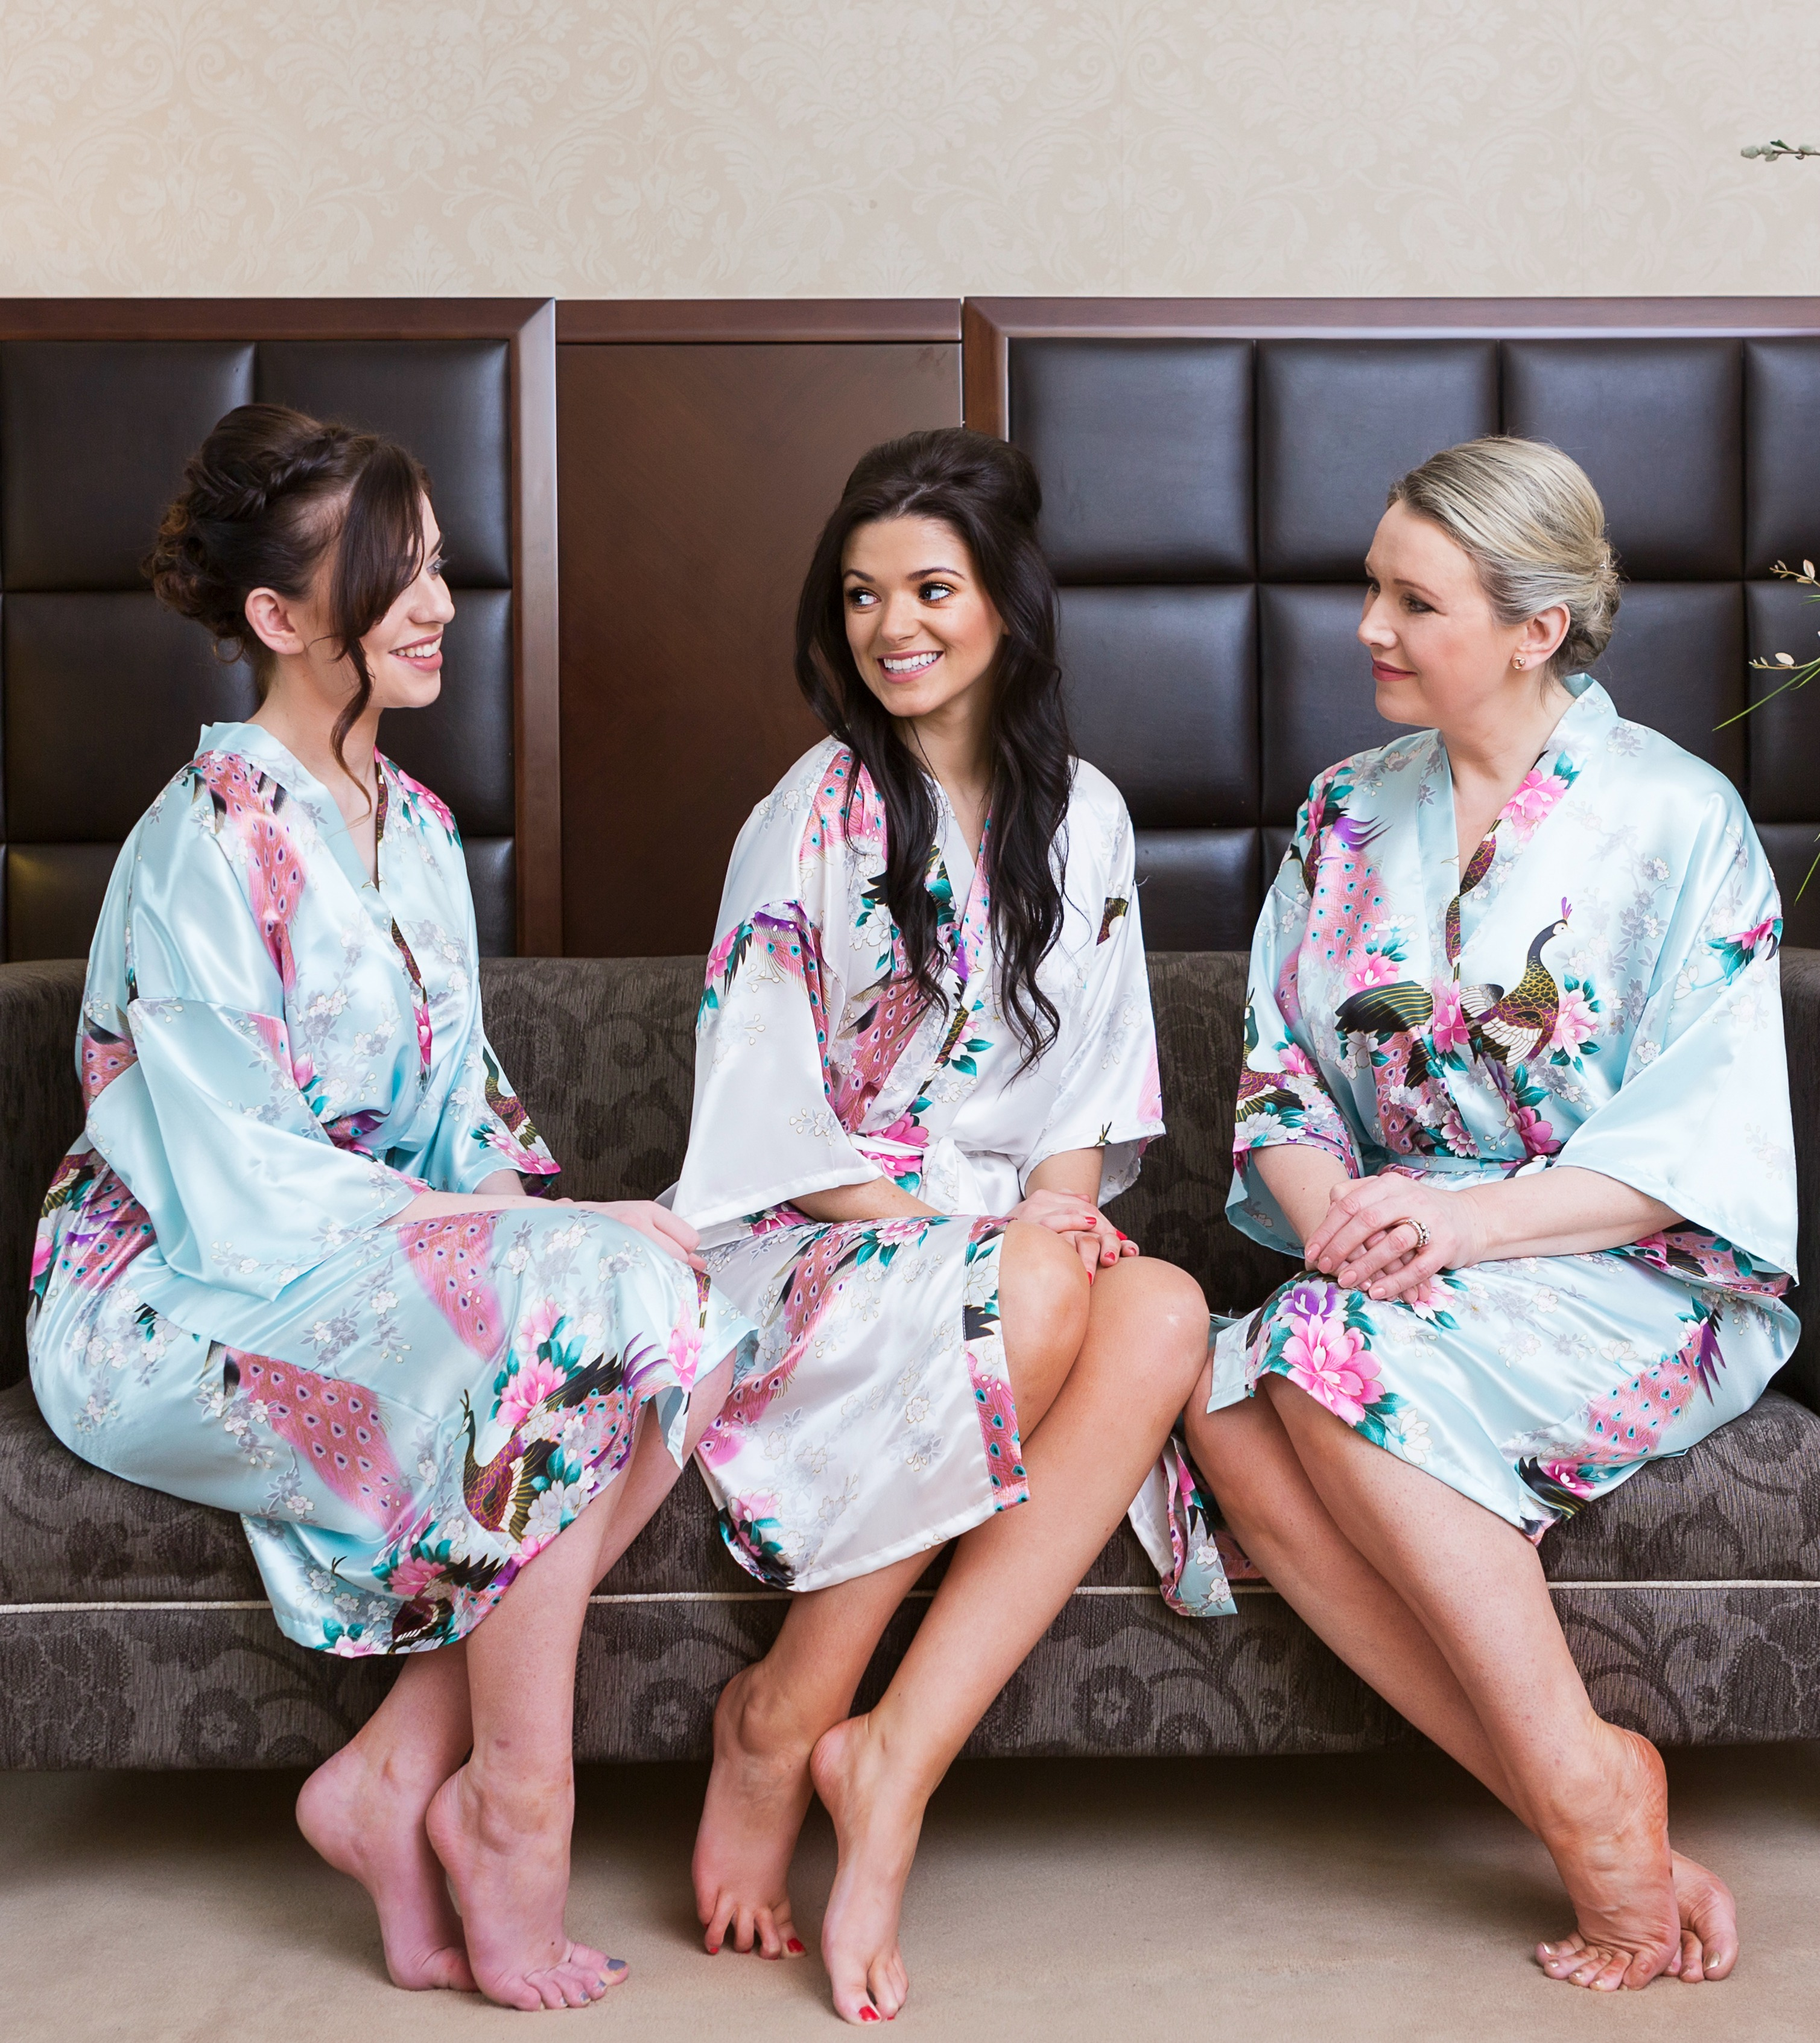 Here are some beautiful gifts for your bridesmaids | Her.ie